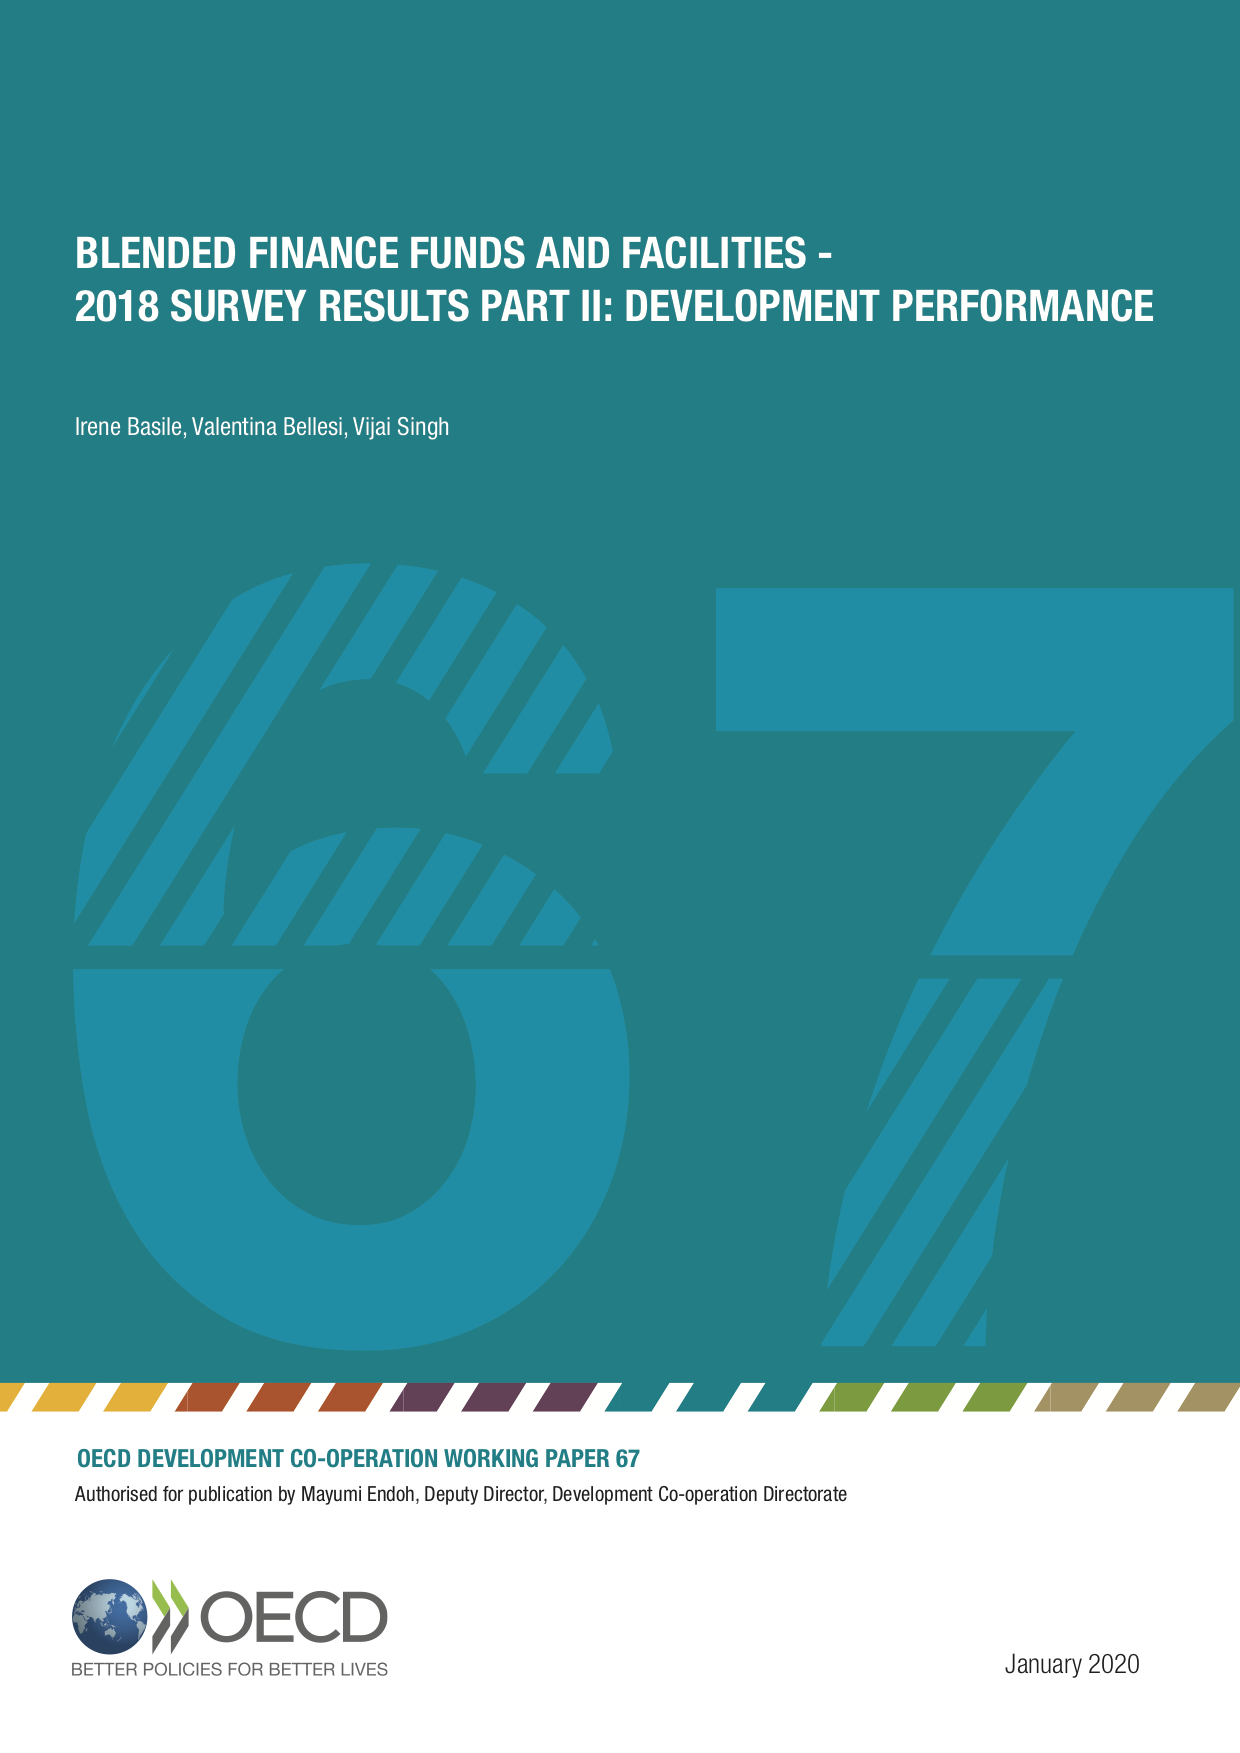 Blended Finance Funds and Facilities – 2018 Survey Results Part II: Development Performance